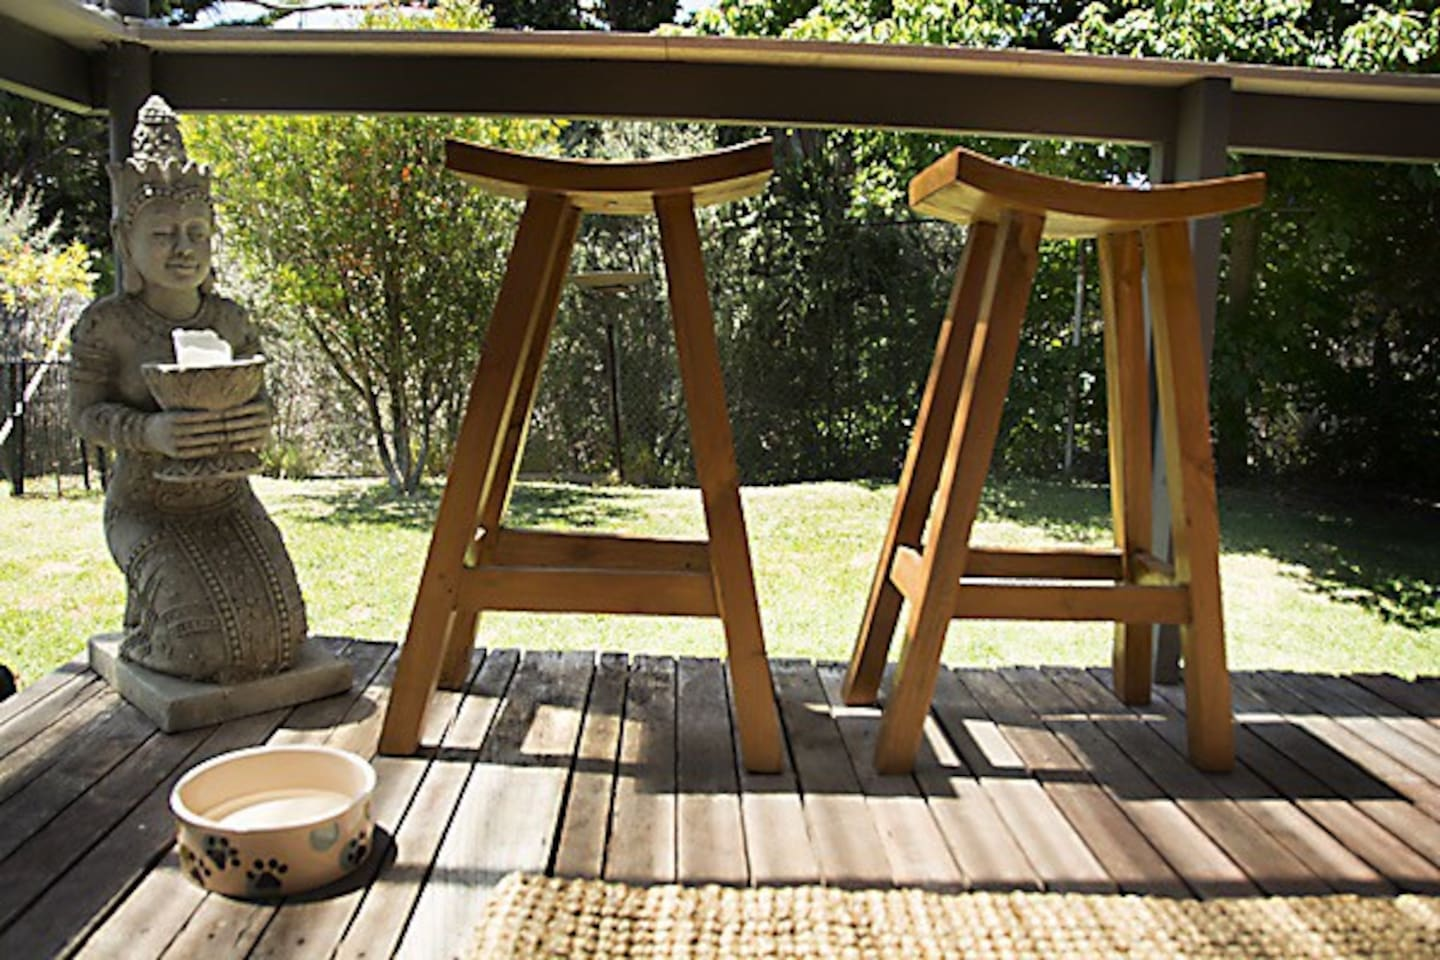 Enjoy the birdlife with a refreshment on the deck